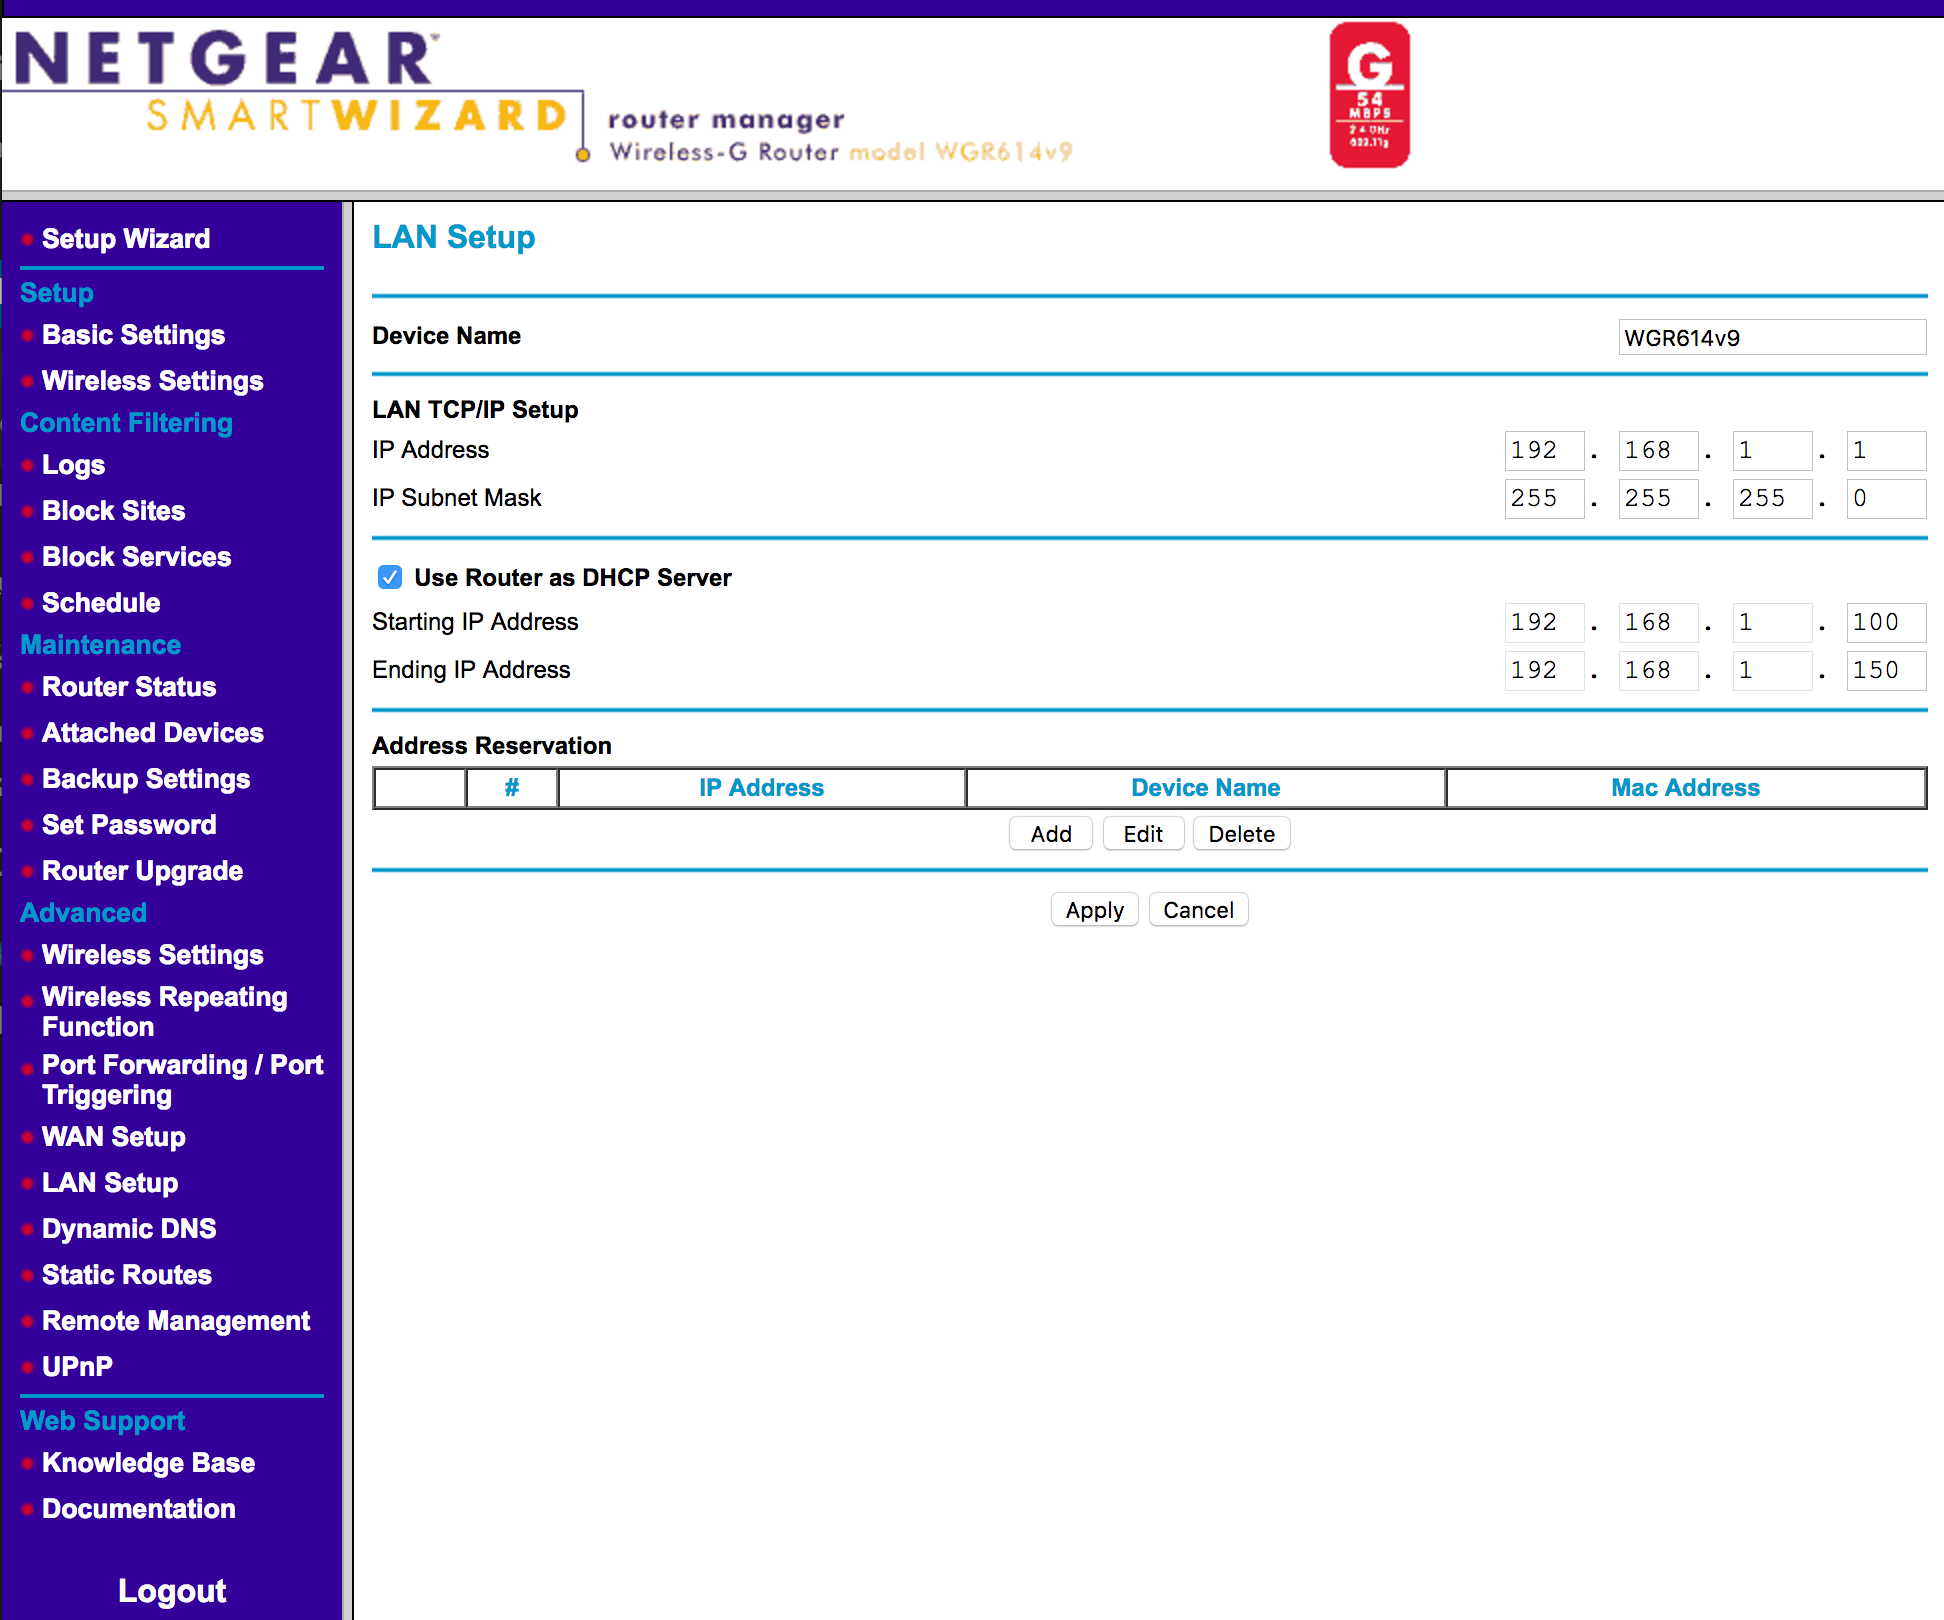 The LAN setup page of a Netgear SOHO router.